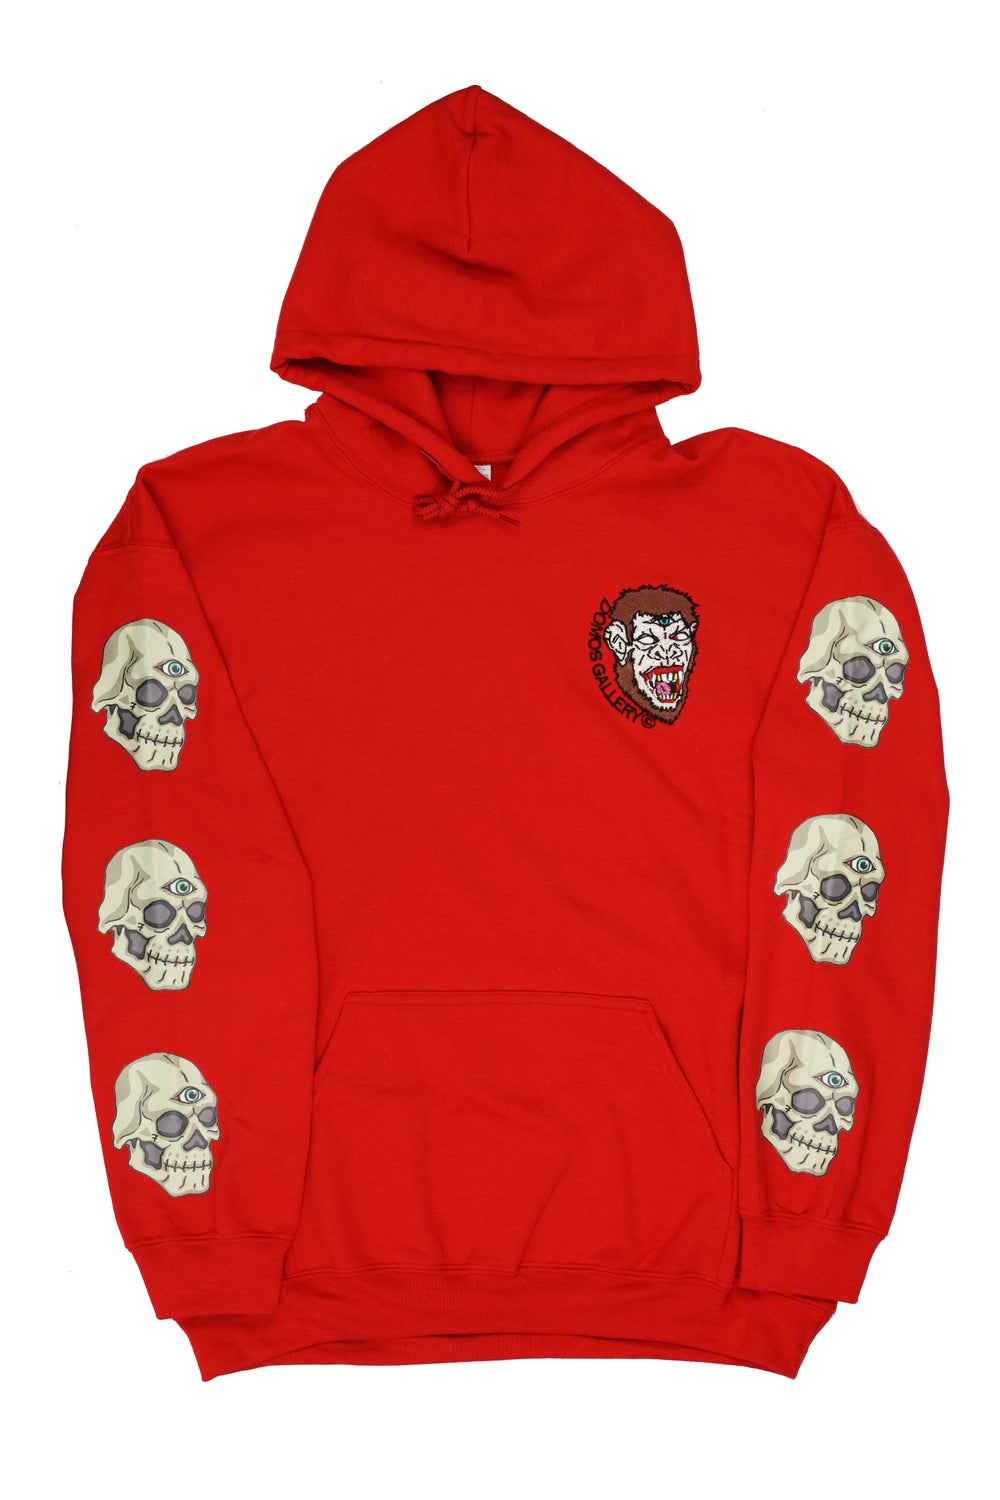 Image of Red 'Smoking Mirrors' Hoody